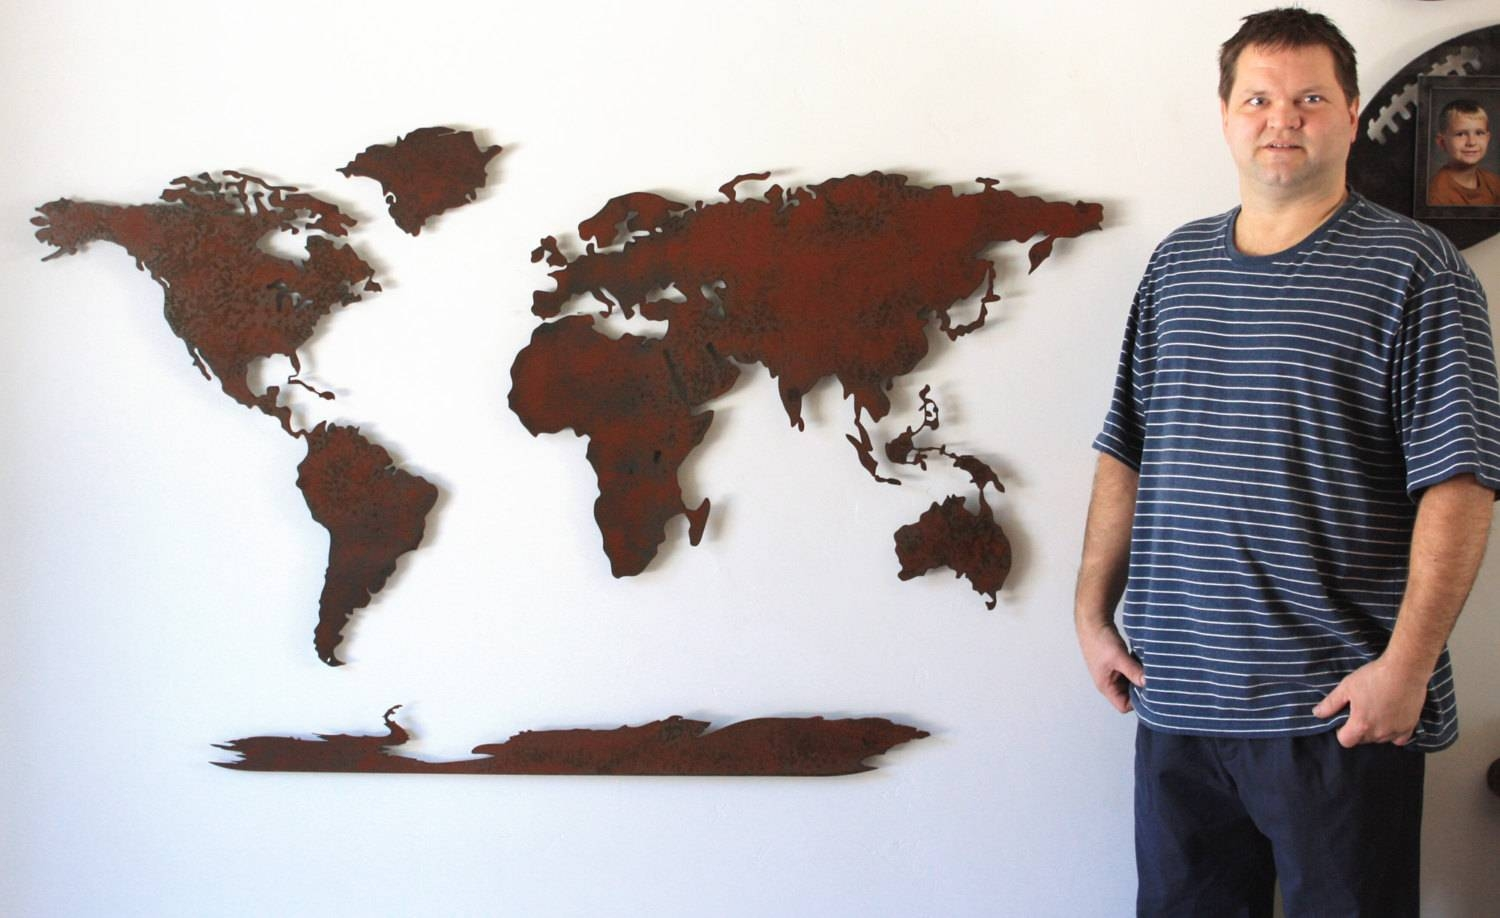 World Map Metal Wall Art 60 Wide X 36 Tall 5 Throughout Most Up To Date Tall Metal Wall Art (View 2 of 20)